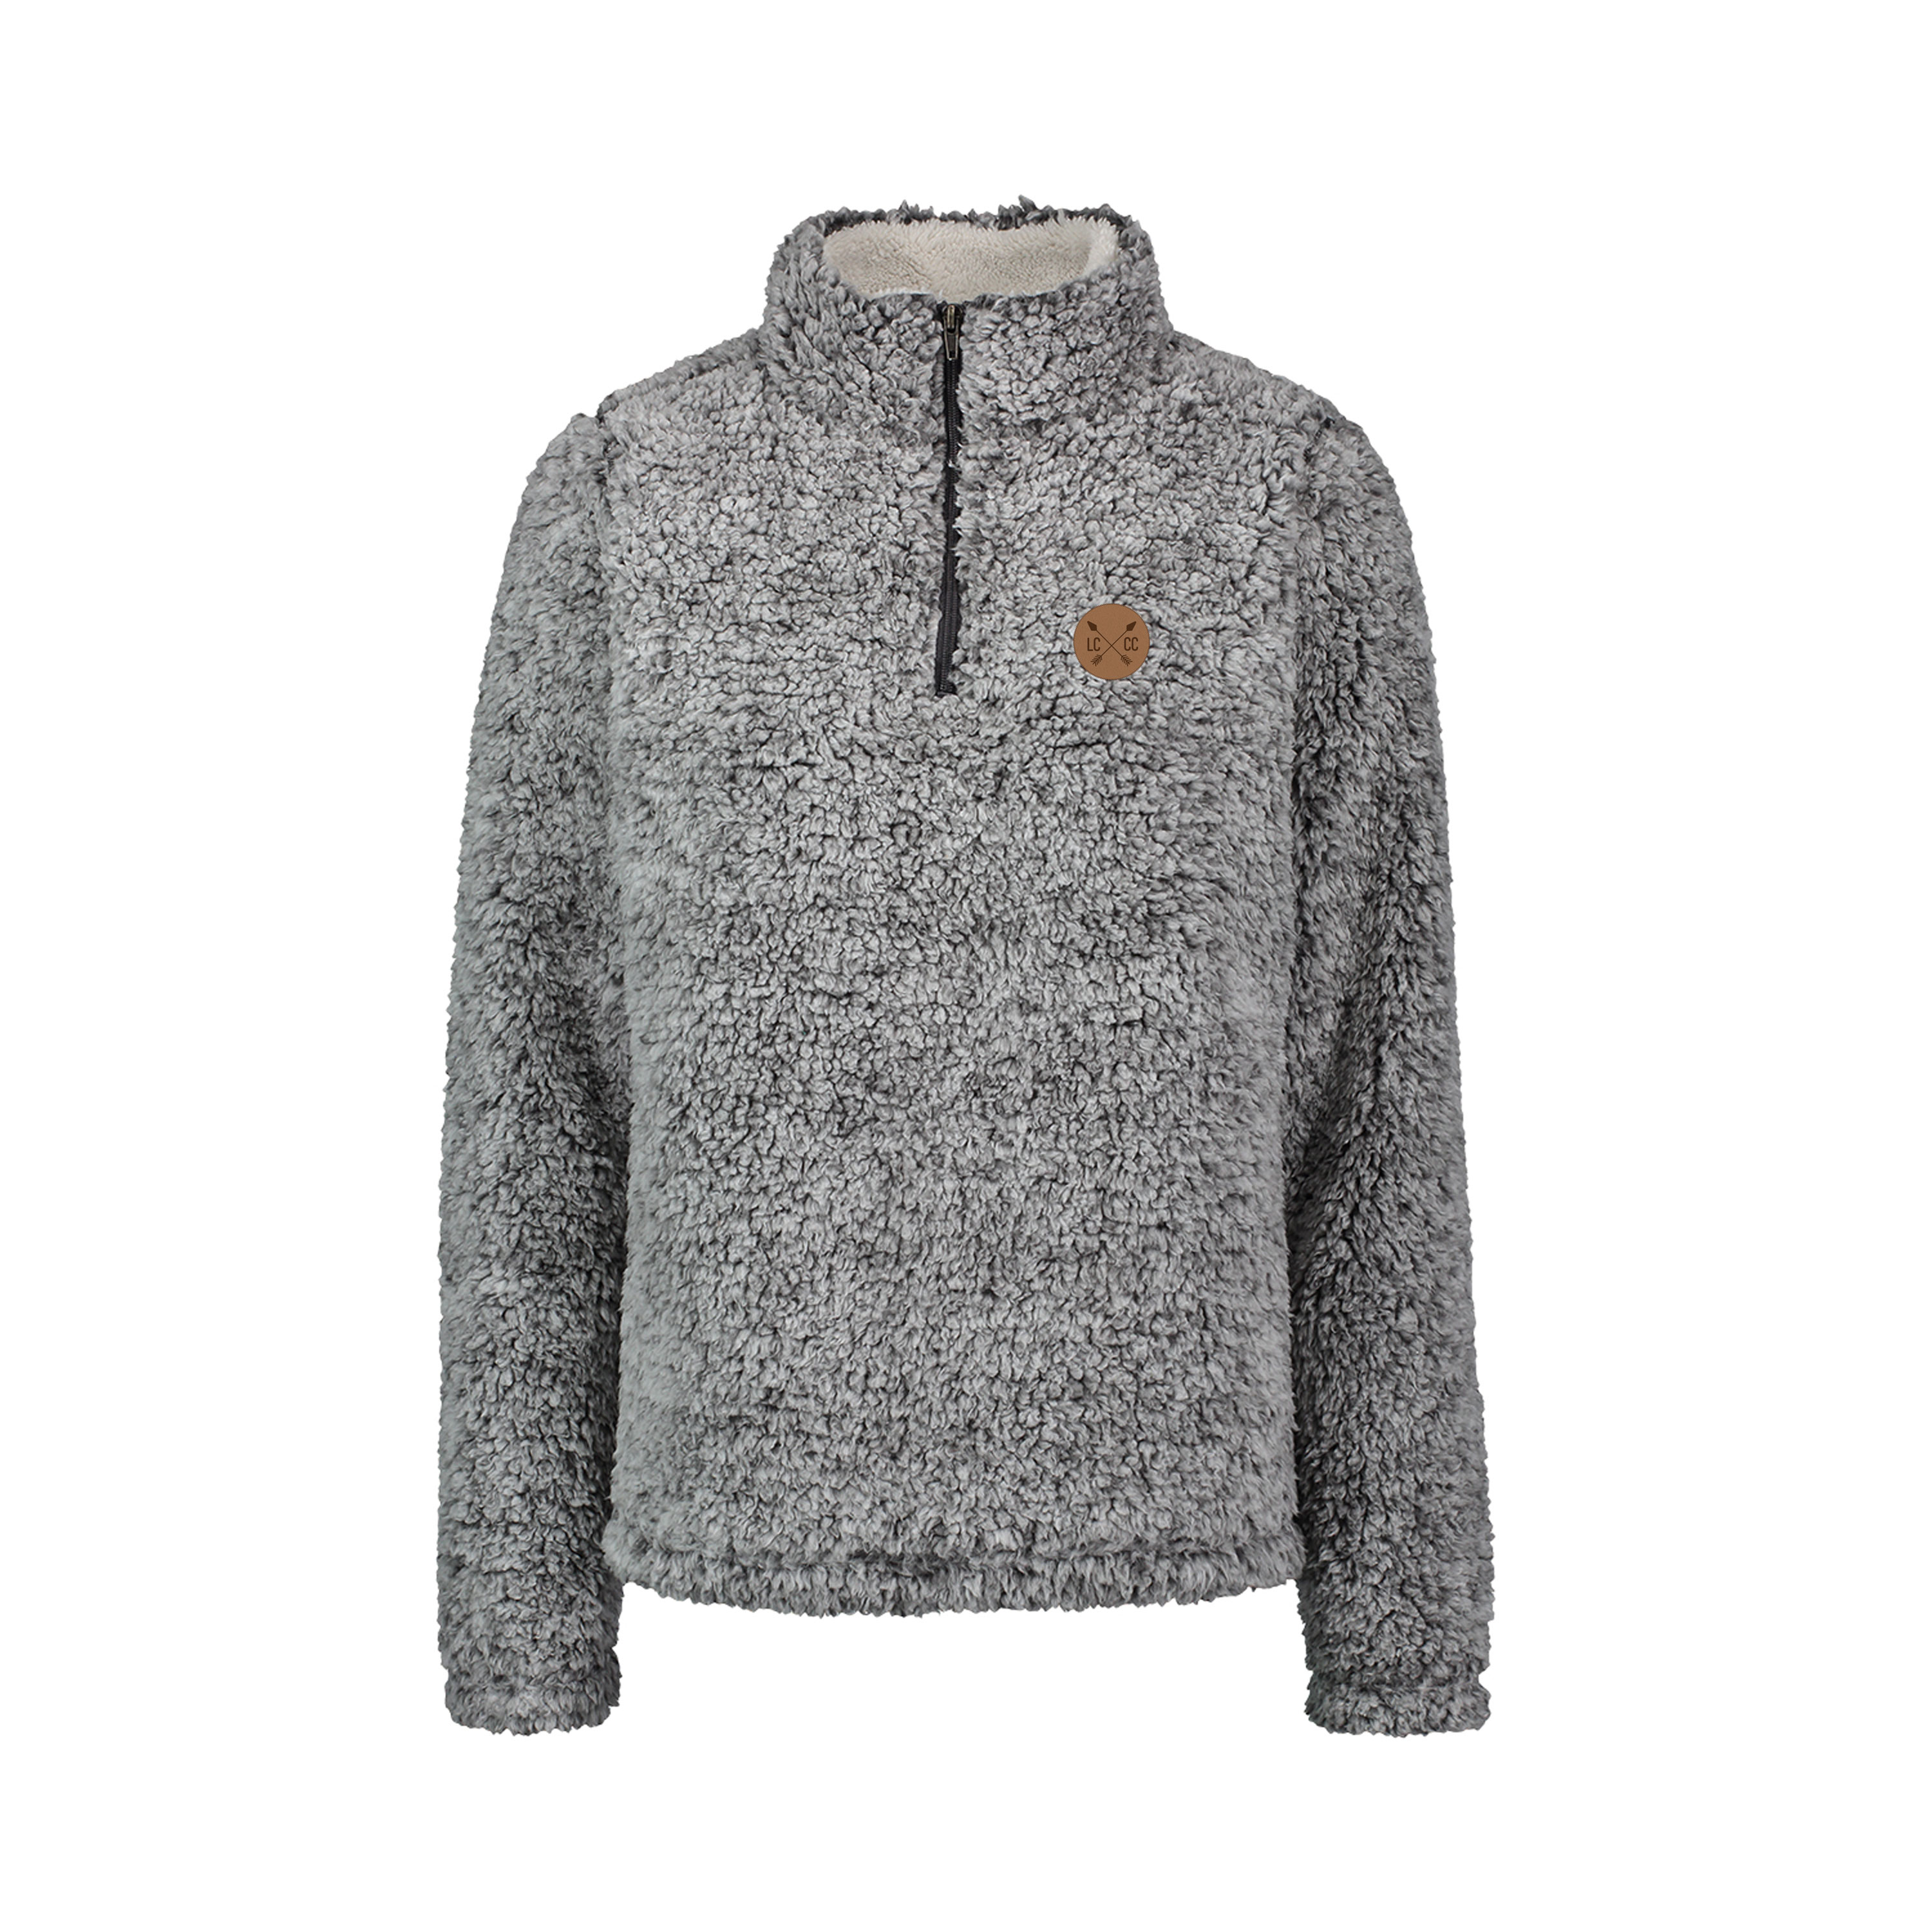 LCCC Sherpa Pull Over